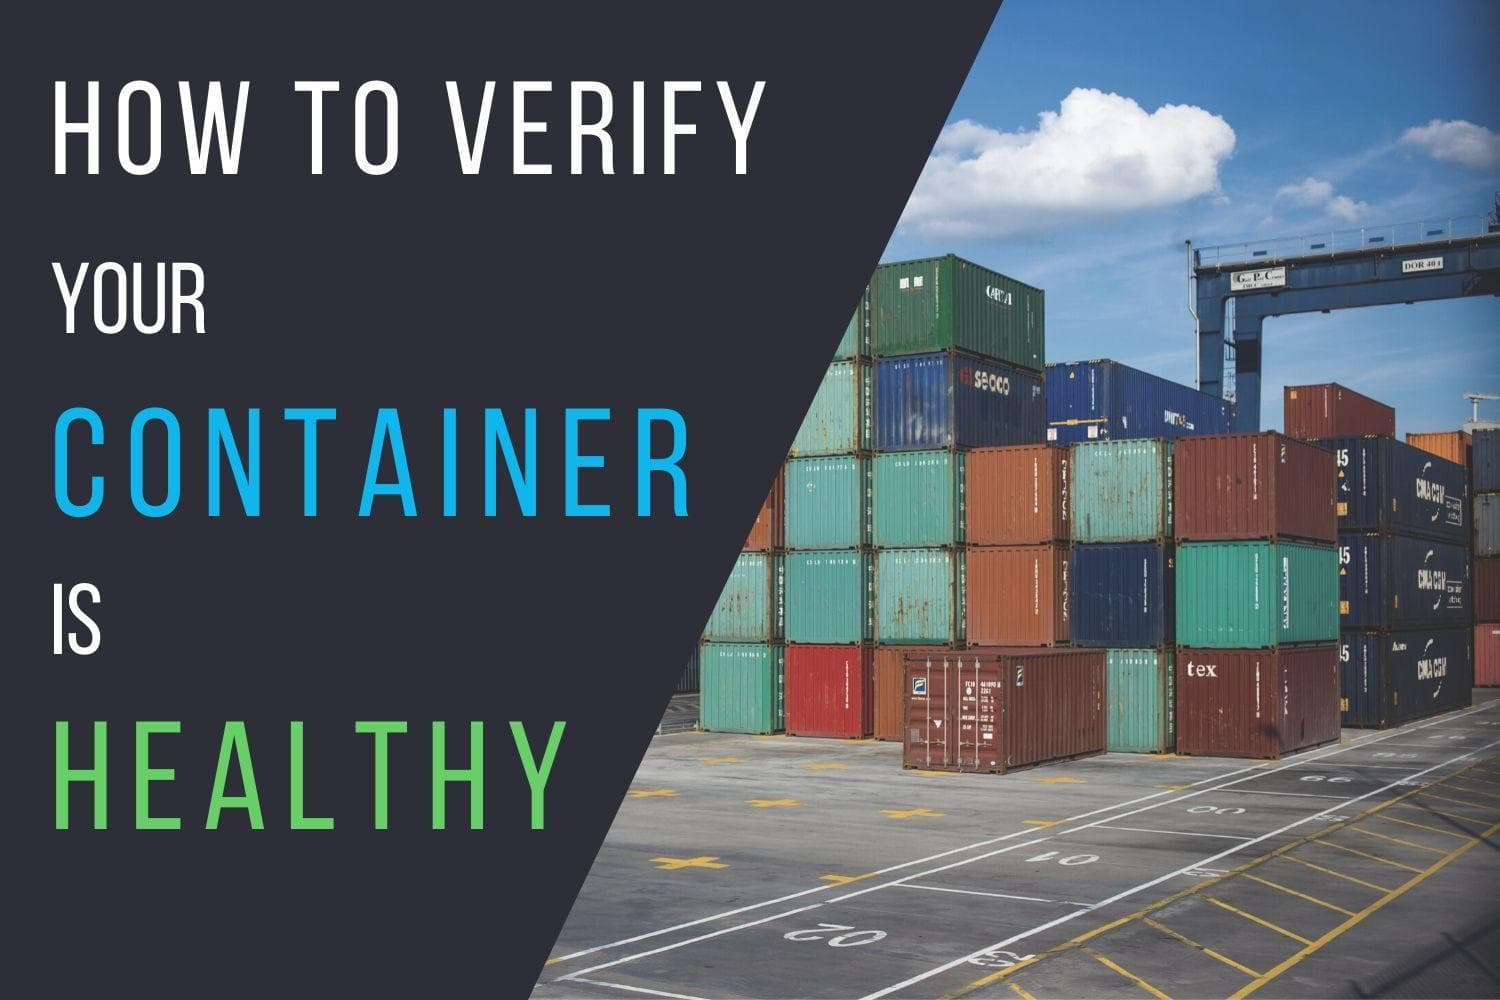 How to verify your container is healthy